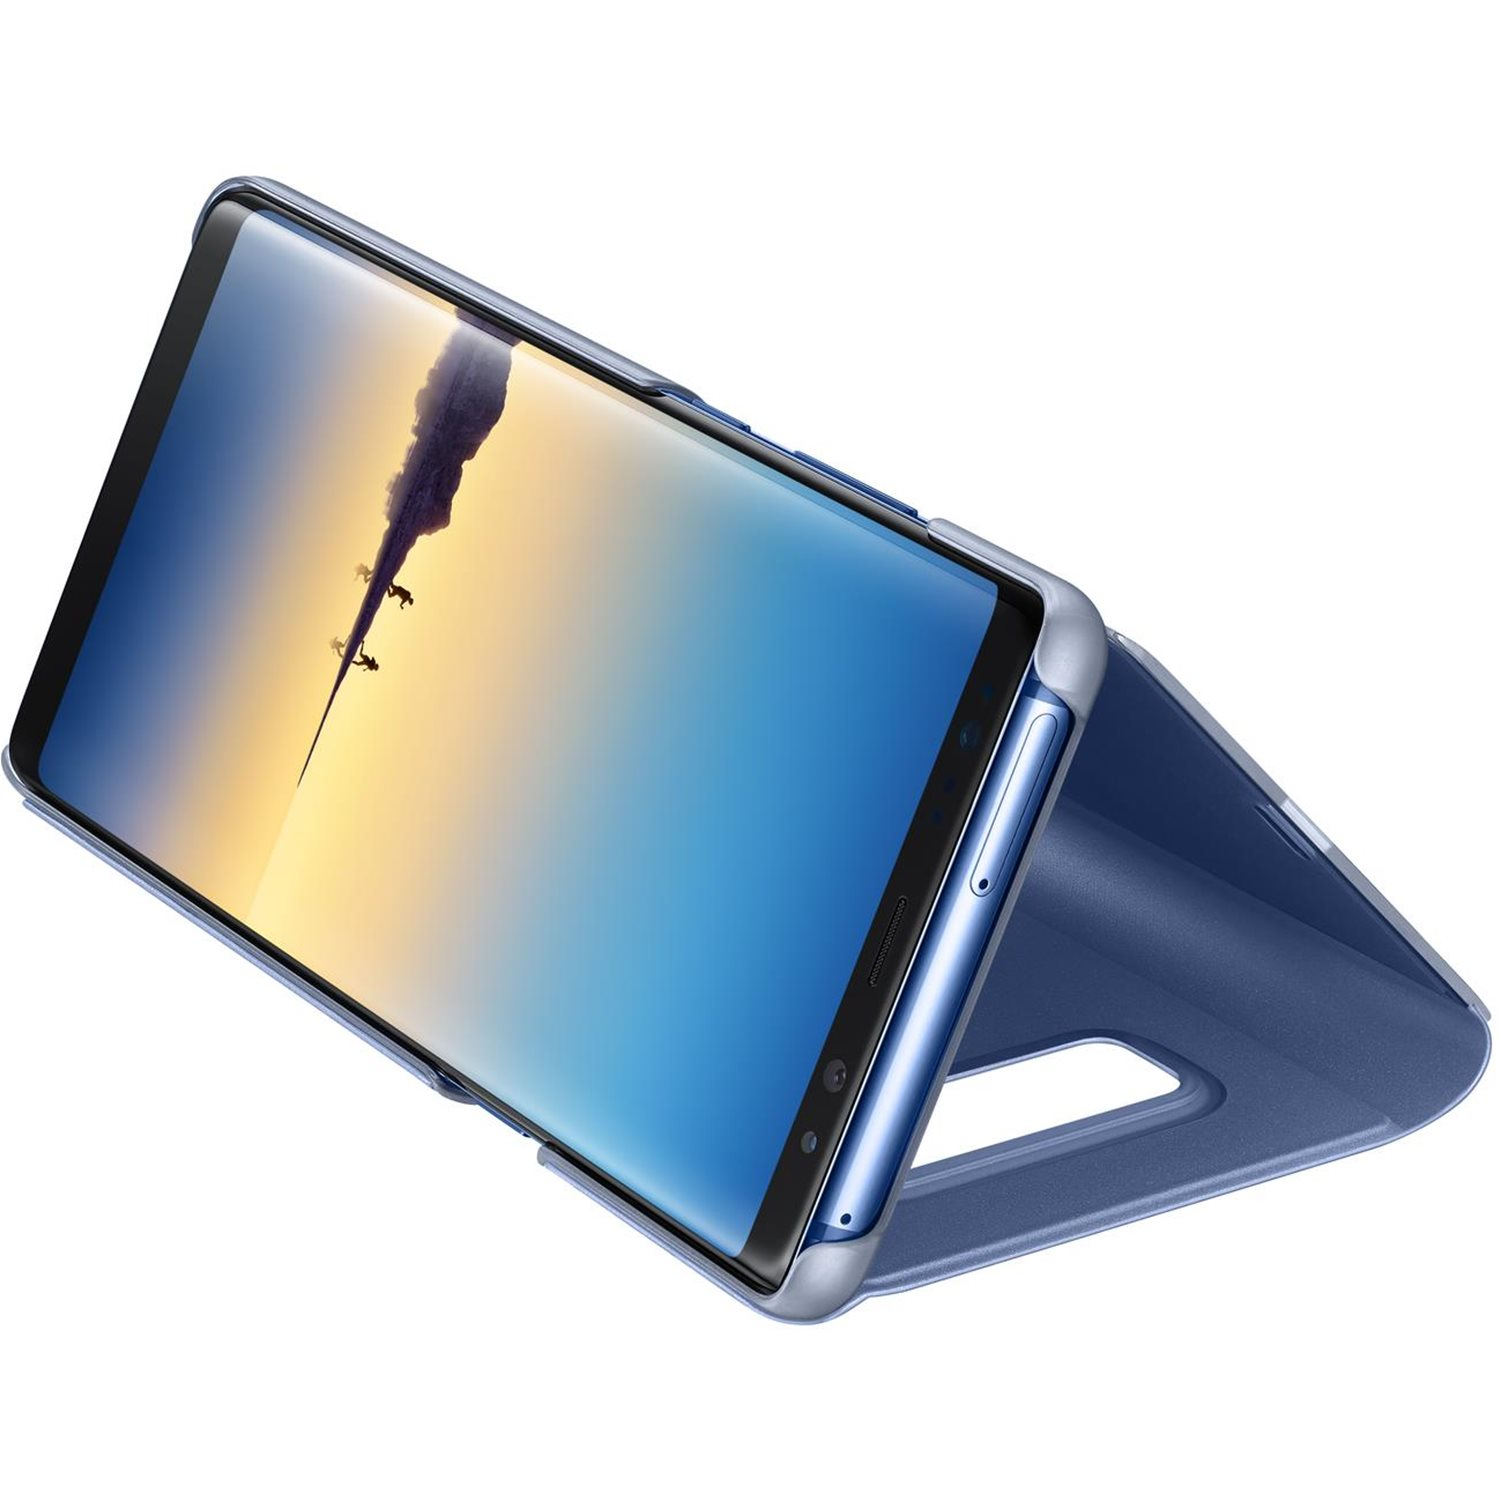 Official Samsung Galaxy Note 8 Clear View Standing Cover Case - Blue